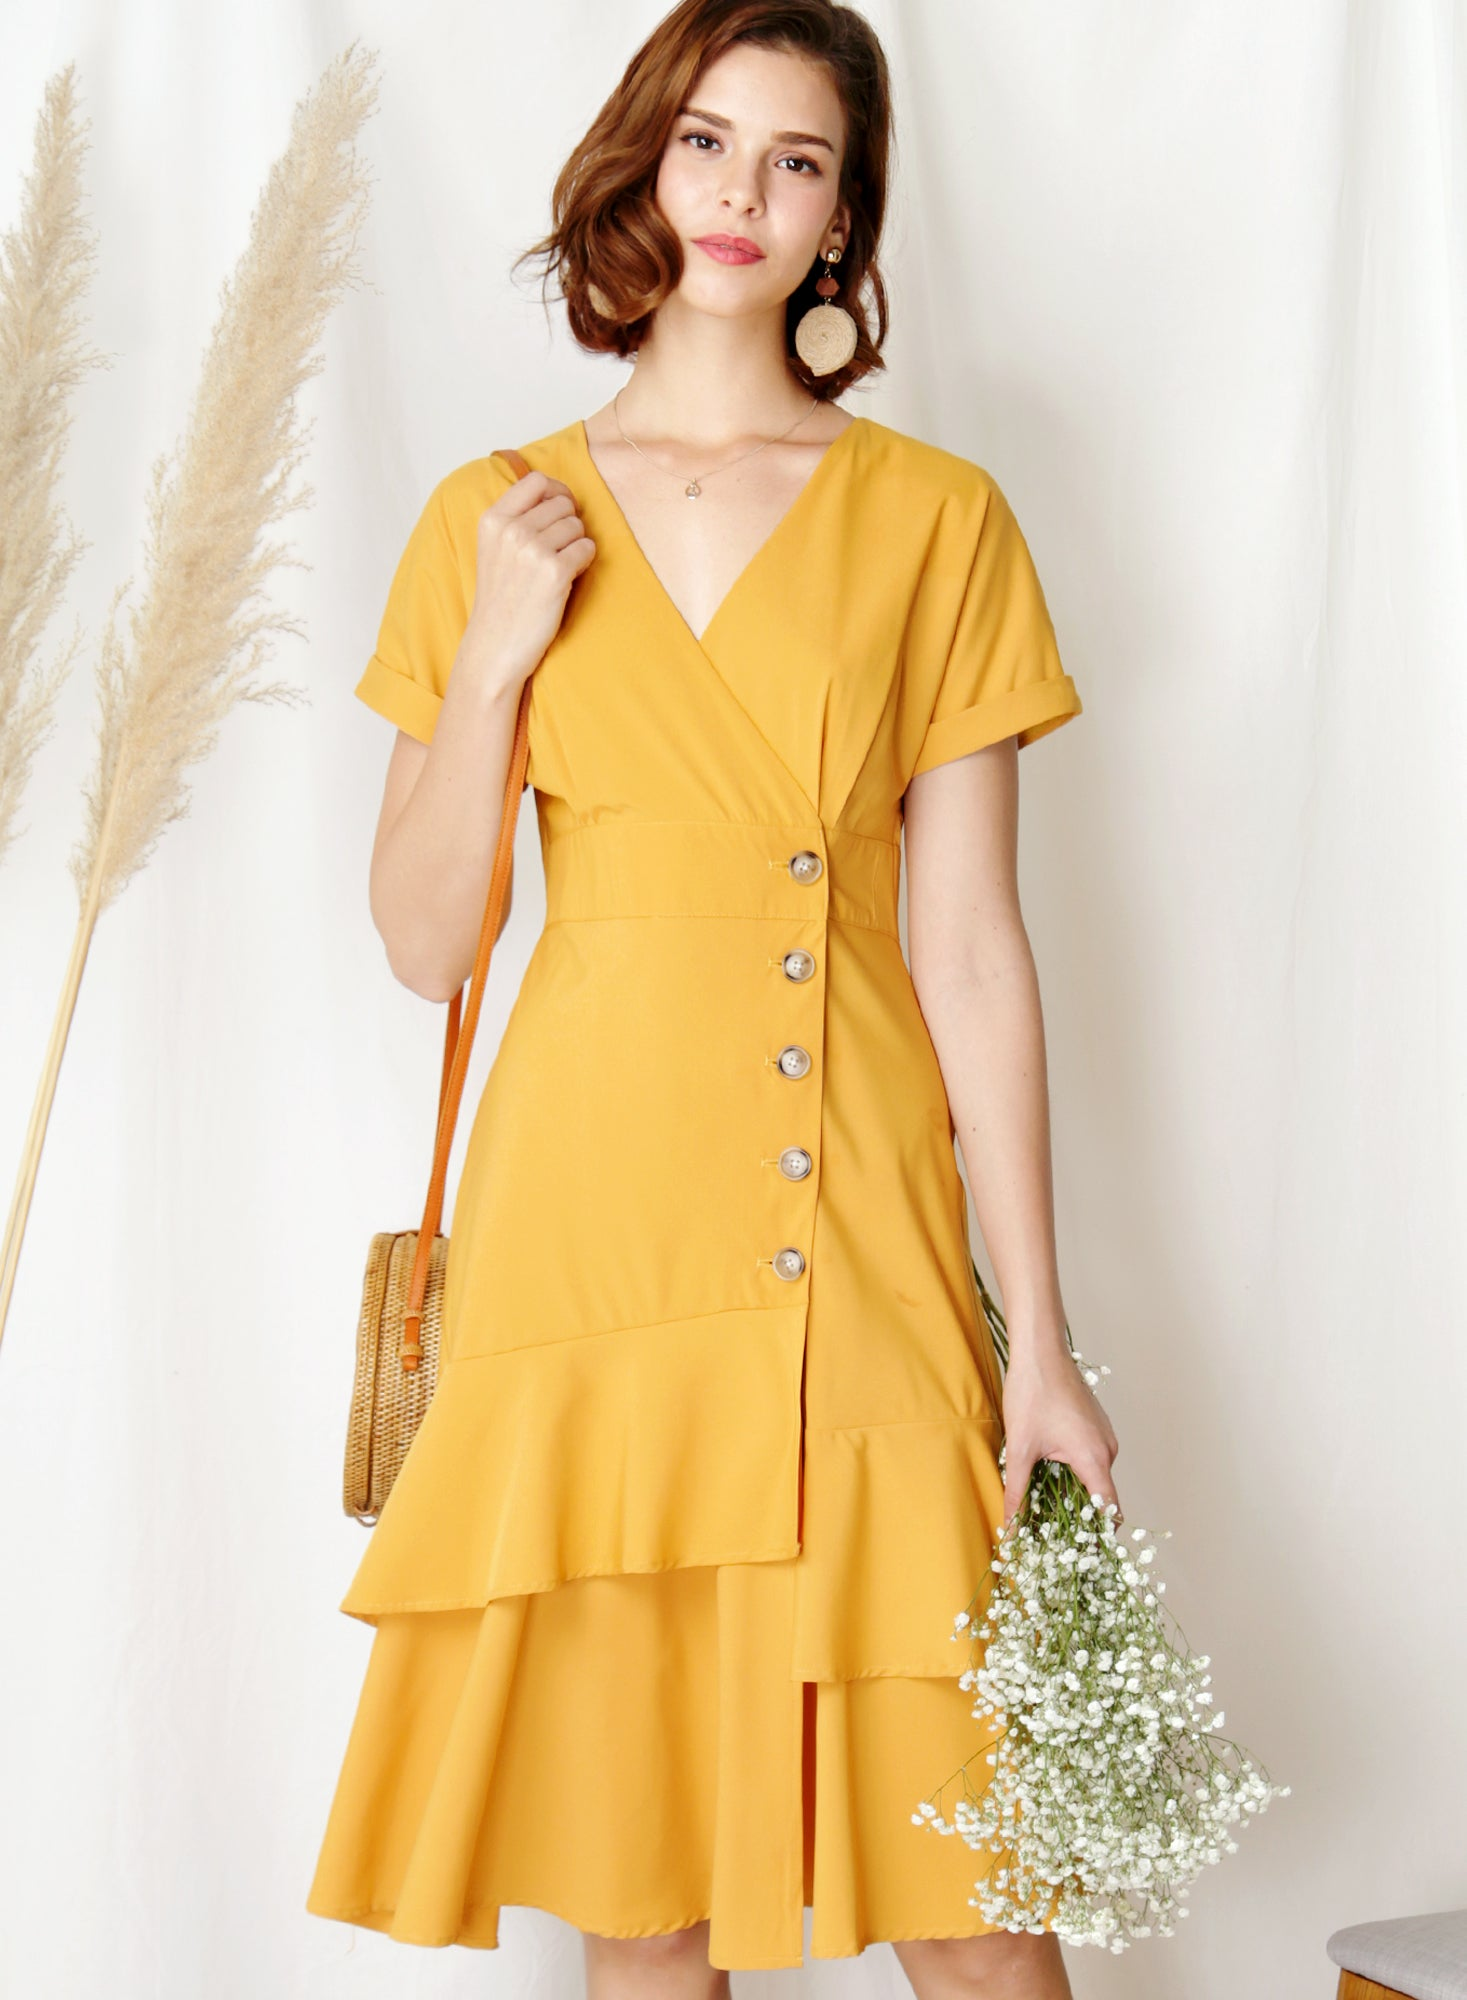 Harbour Tiered Hem Midi Dress (Marigold) at $ 45.00 only sold at And Well Dressed Online Fashion Store Singapore